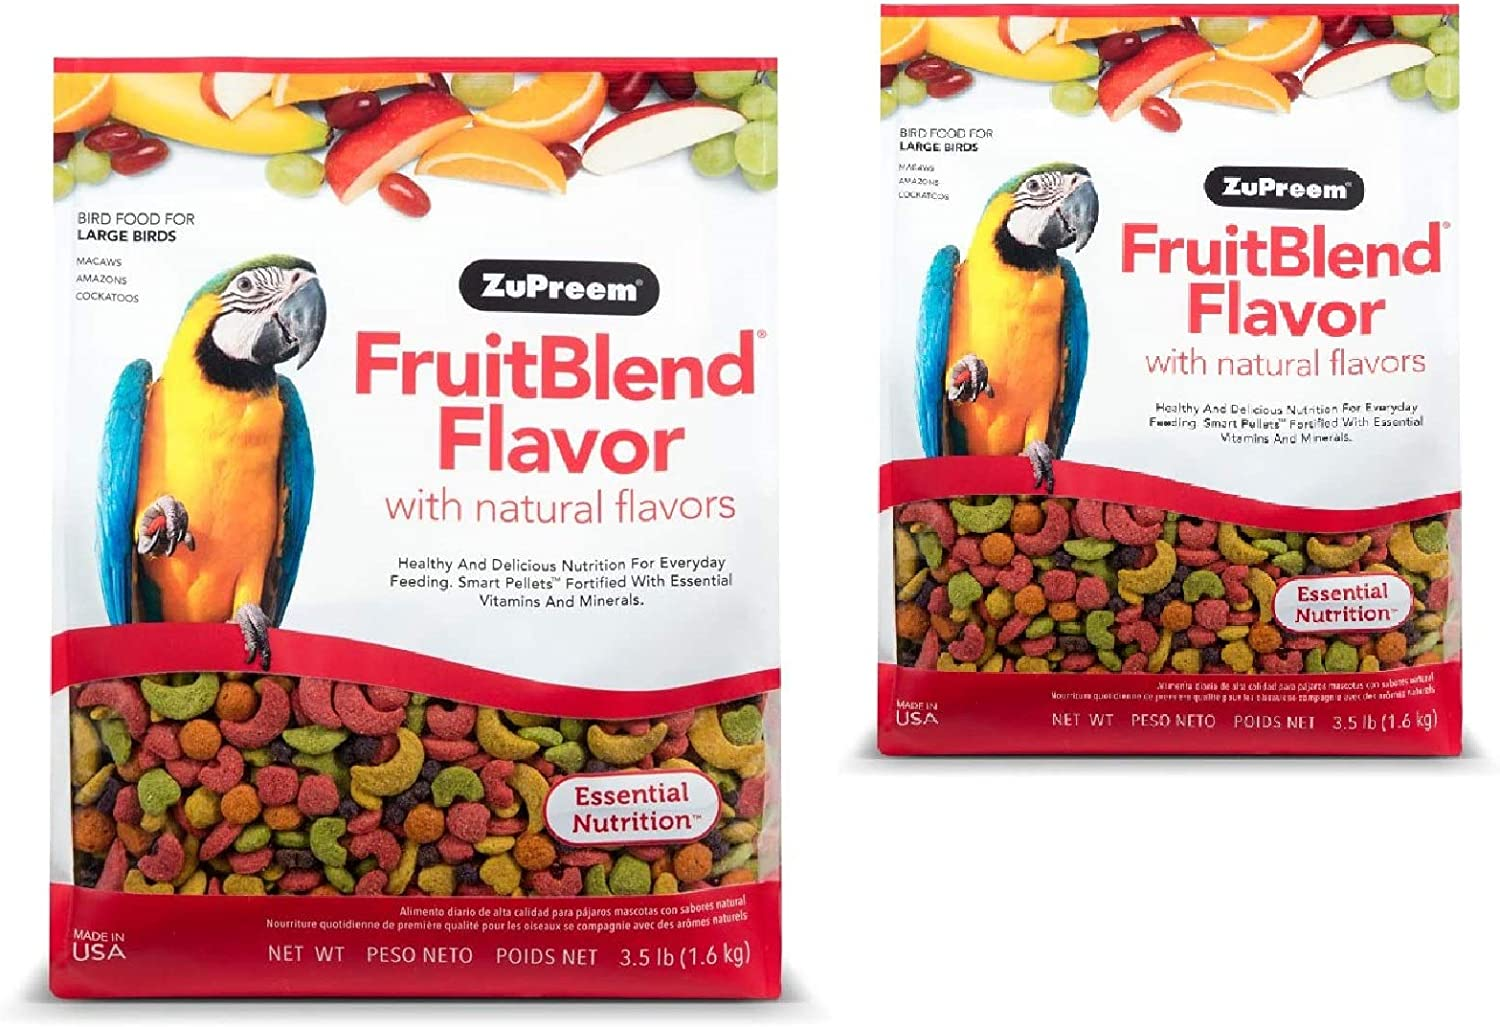 ZuPreem FruitBlend Flavor Pellets Bird Food for Large Birds | Powerful Pellets Made in The USA, Naturally Flavored for Amazons, Macaws, Cockatoos